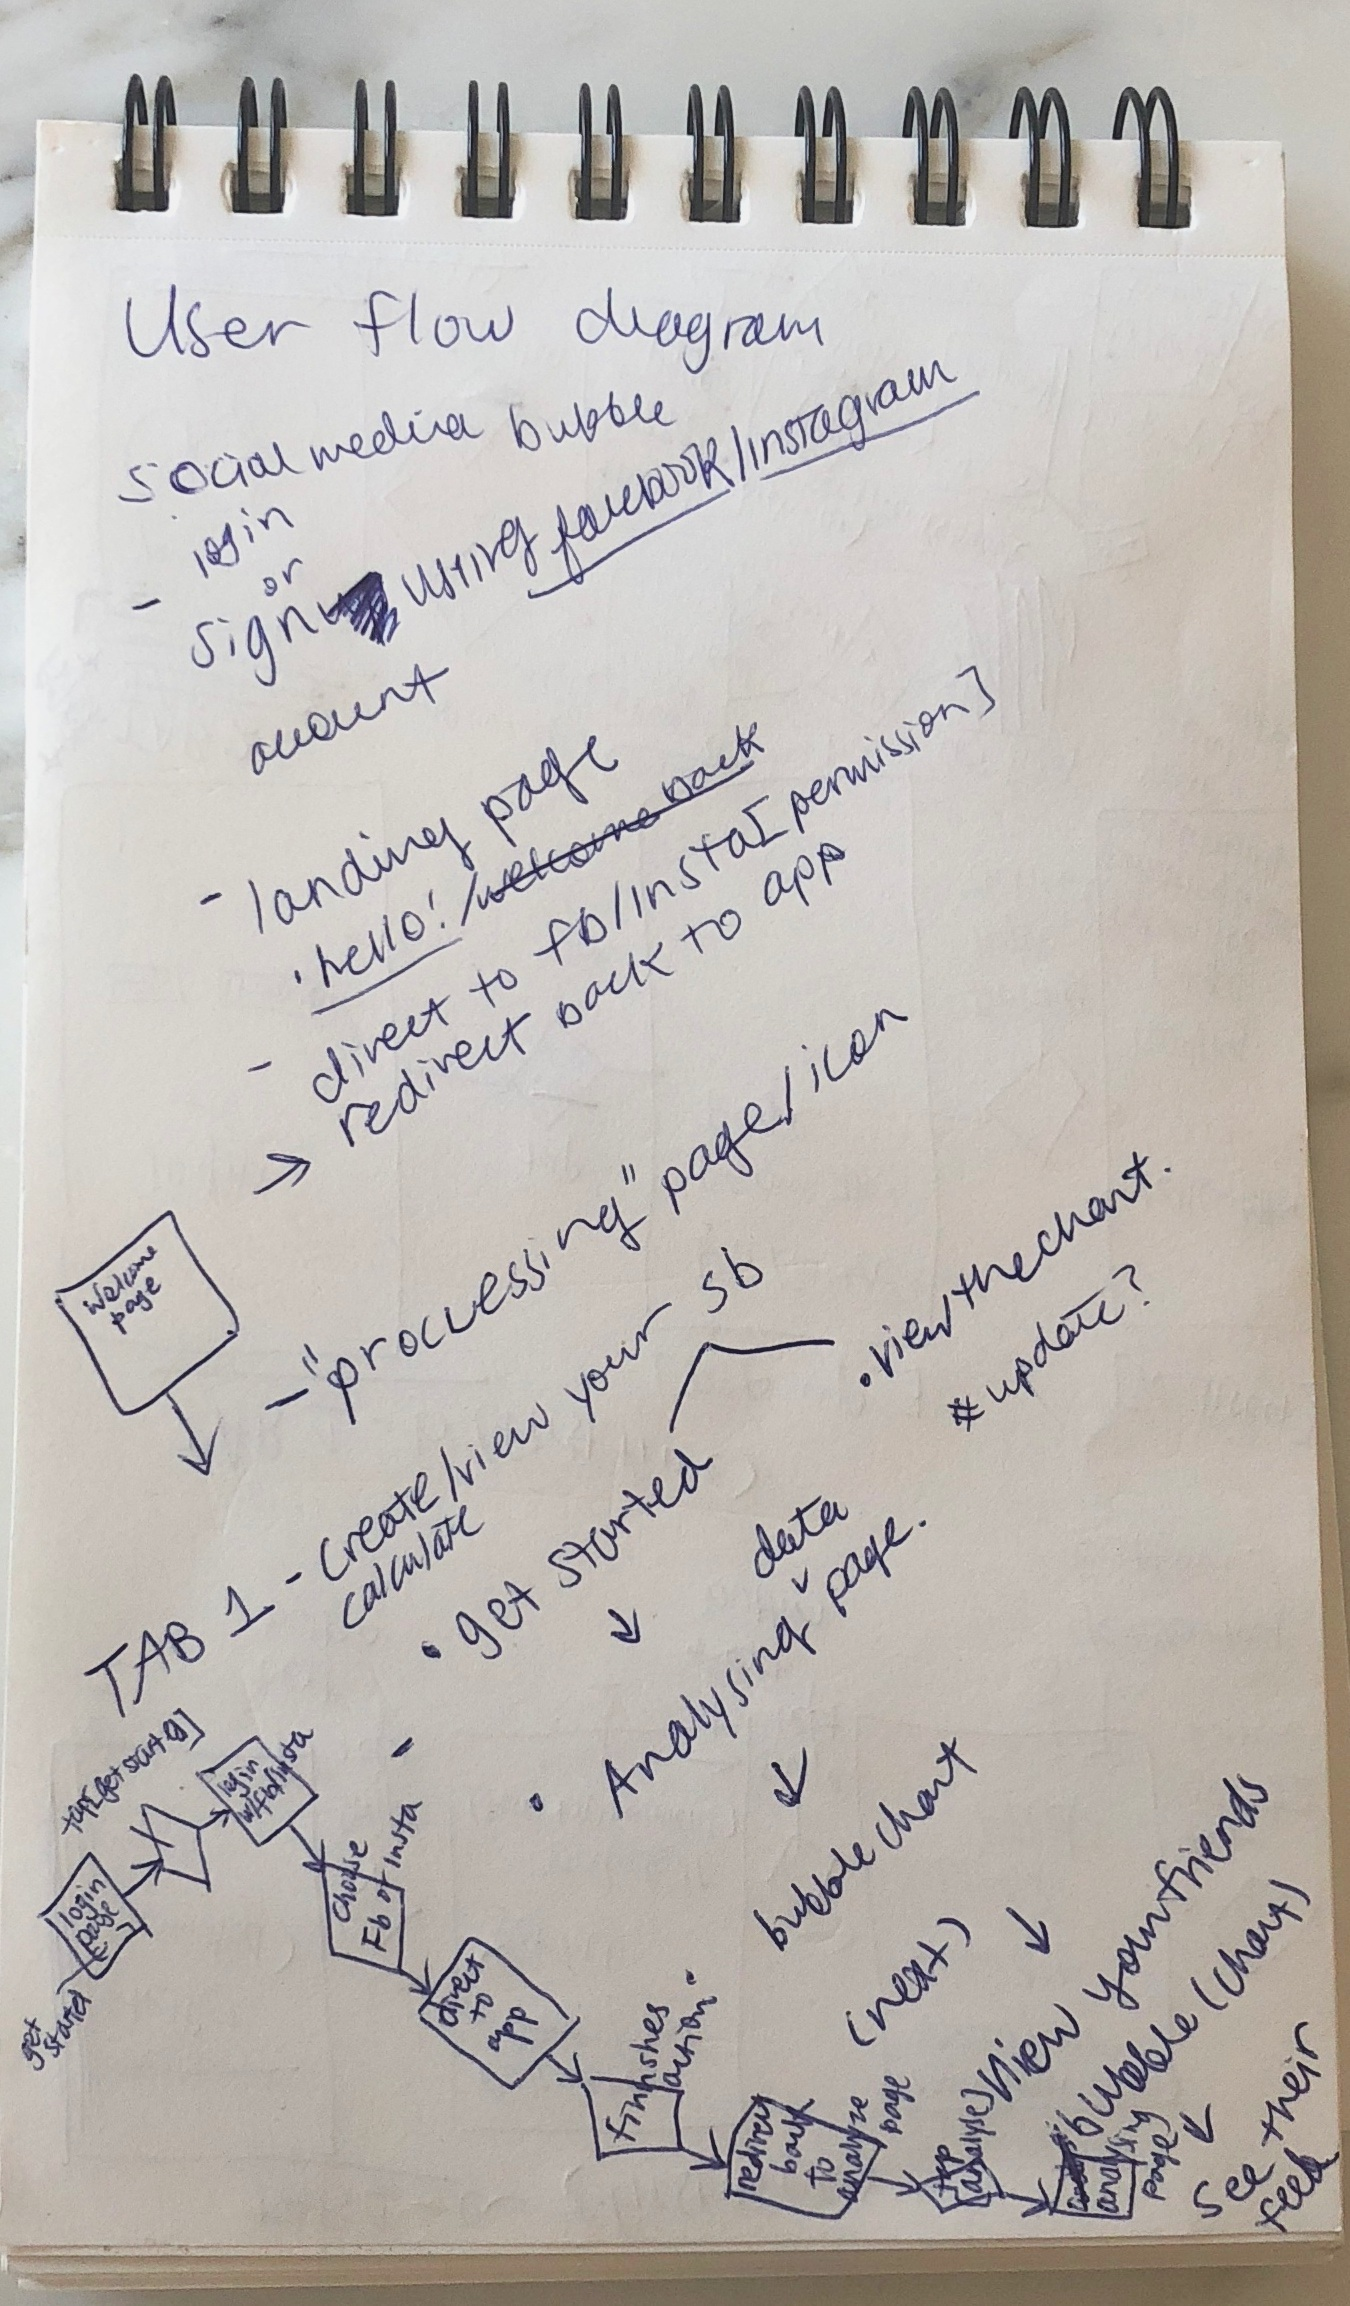 Notes about user flow diagram and features to include.